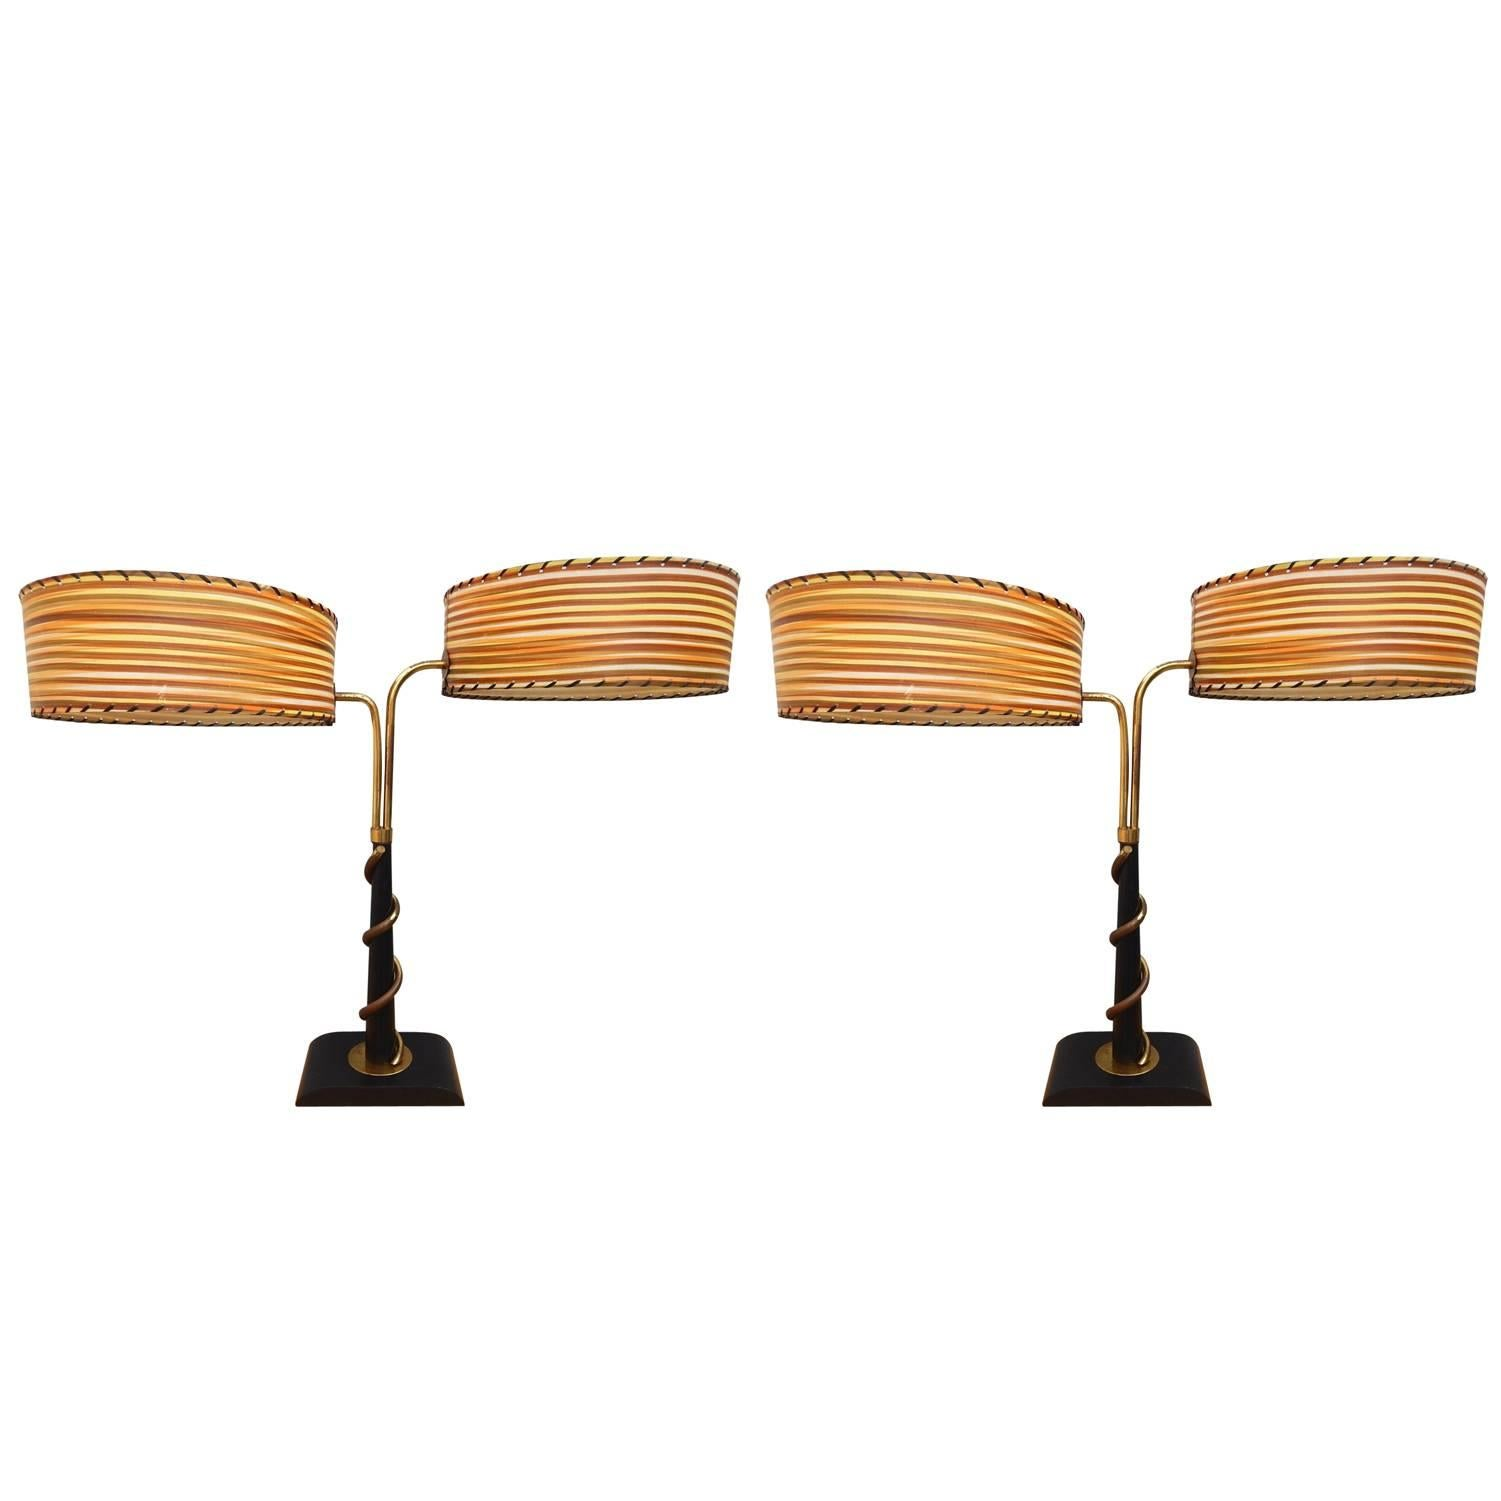 Pair of Mid-Century Modern Majestic Lamp Co. Table Lamps